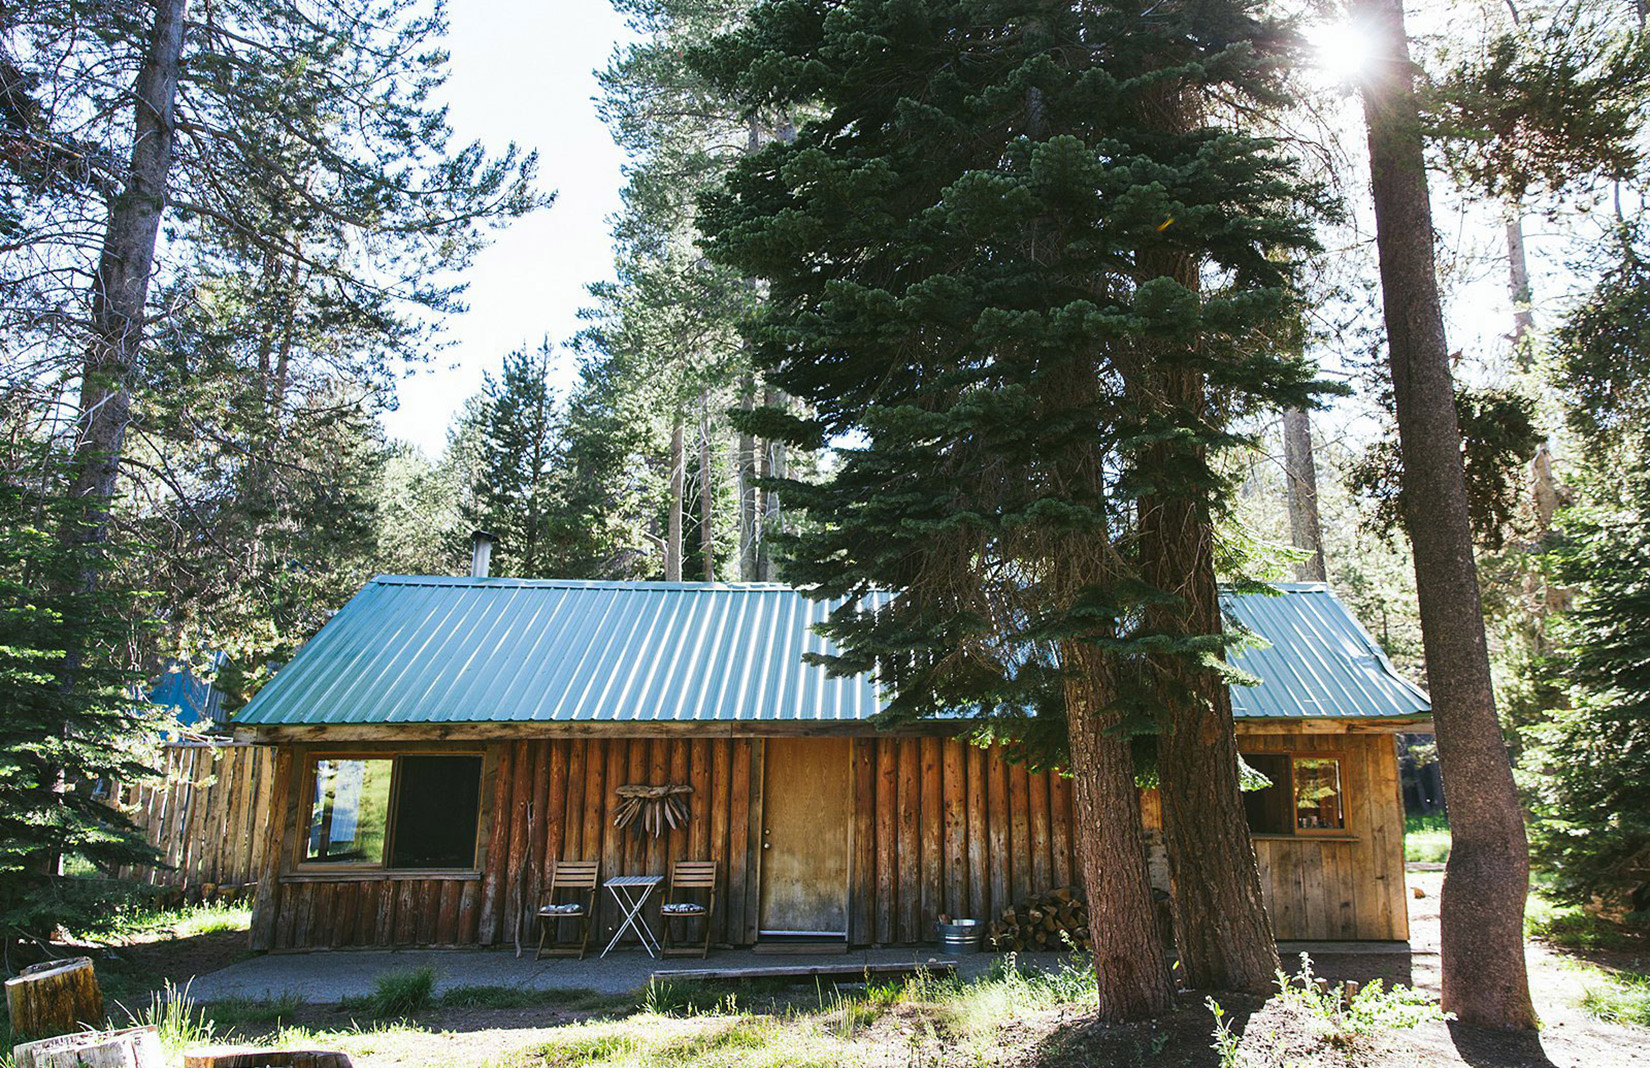 Log cabin for sale close to Yosemite National Park